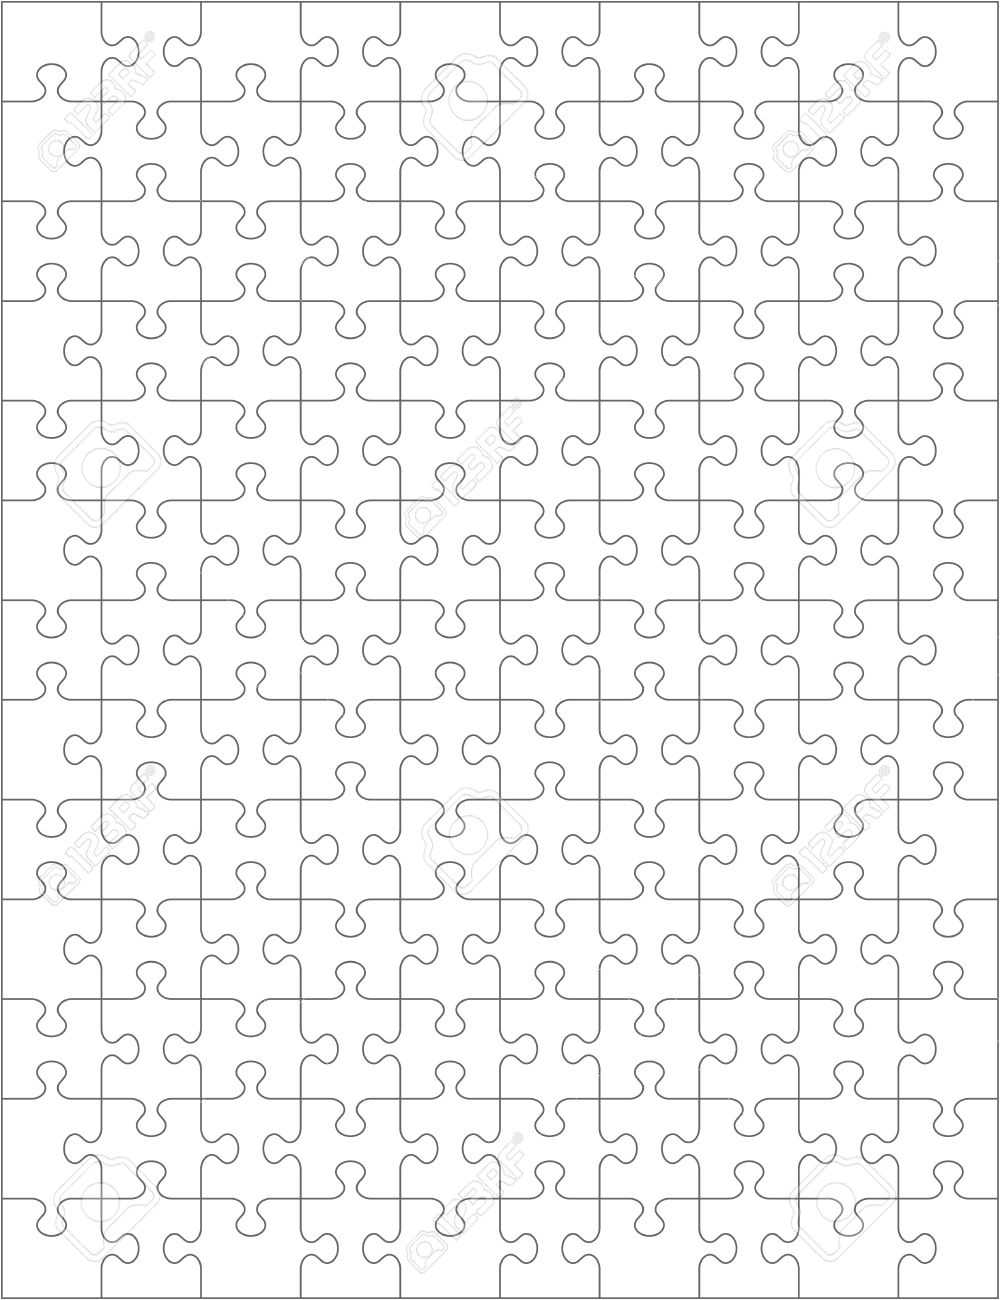 Jigsaw Puzzle Blank Template Or Cutting Guidelines Of 130 Transparent Pieces Are Easy To